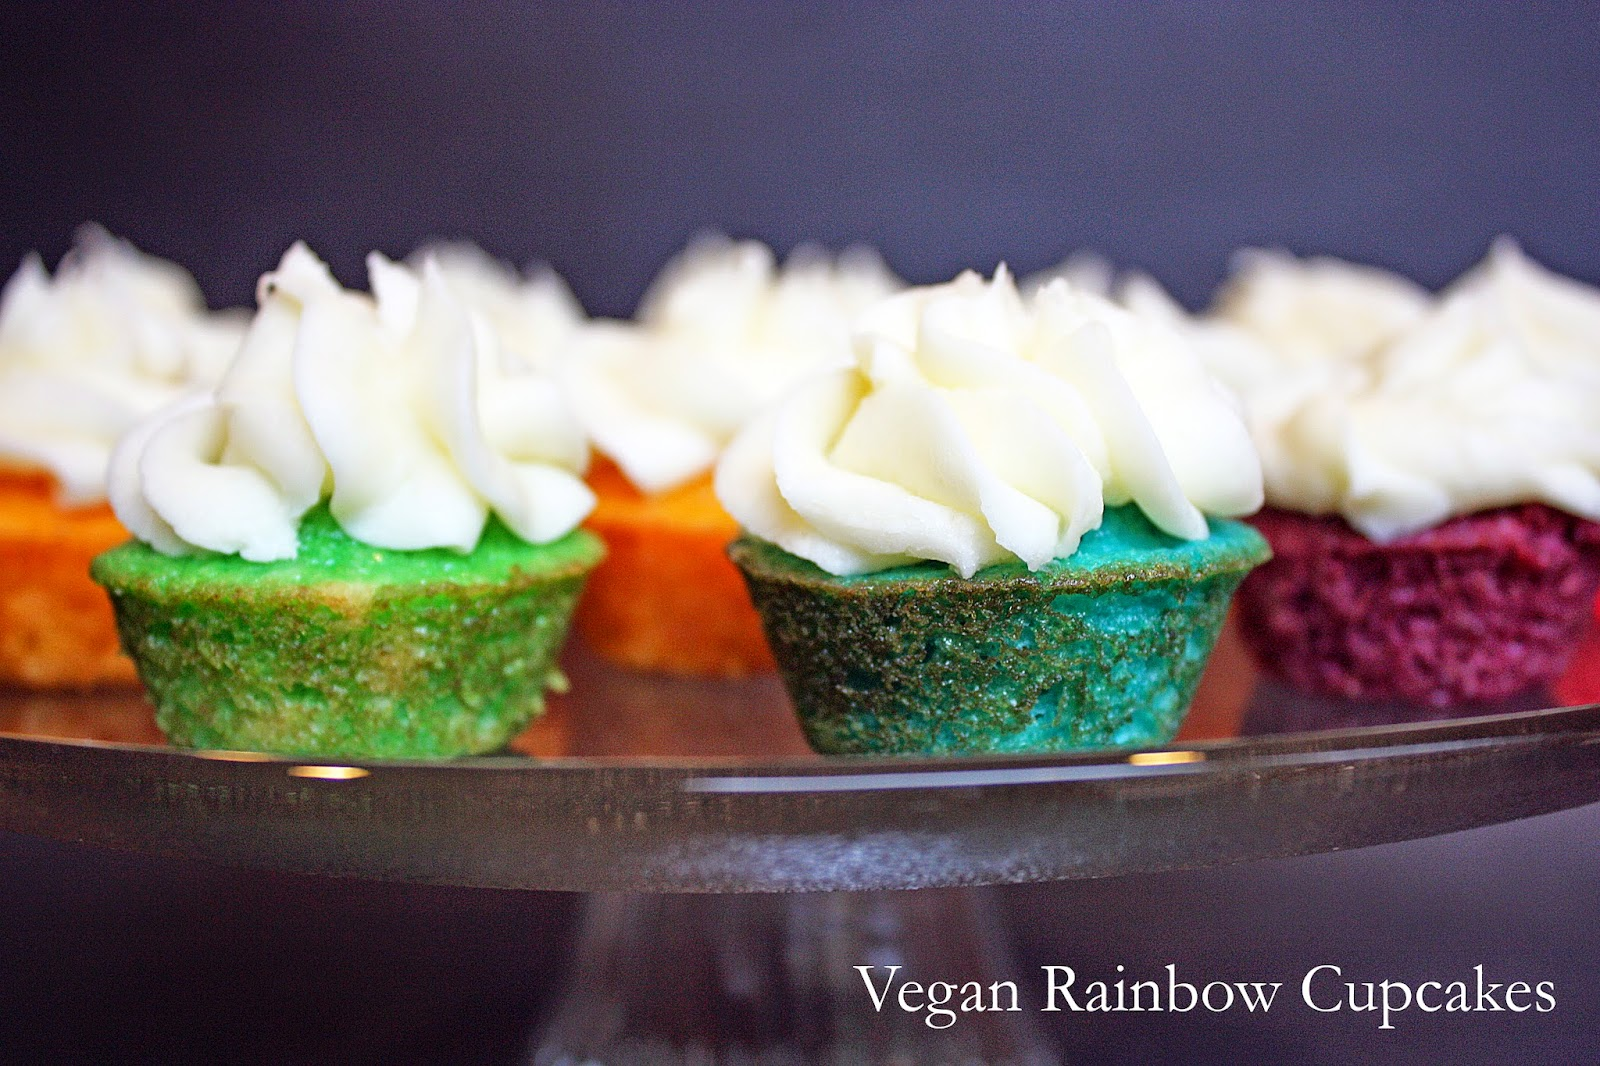 vegan rainbow mini cupcakes with salted almond buttercream